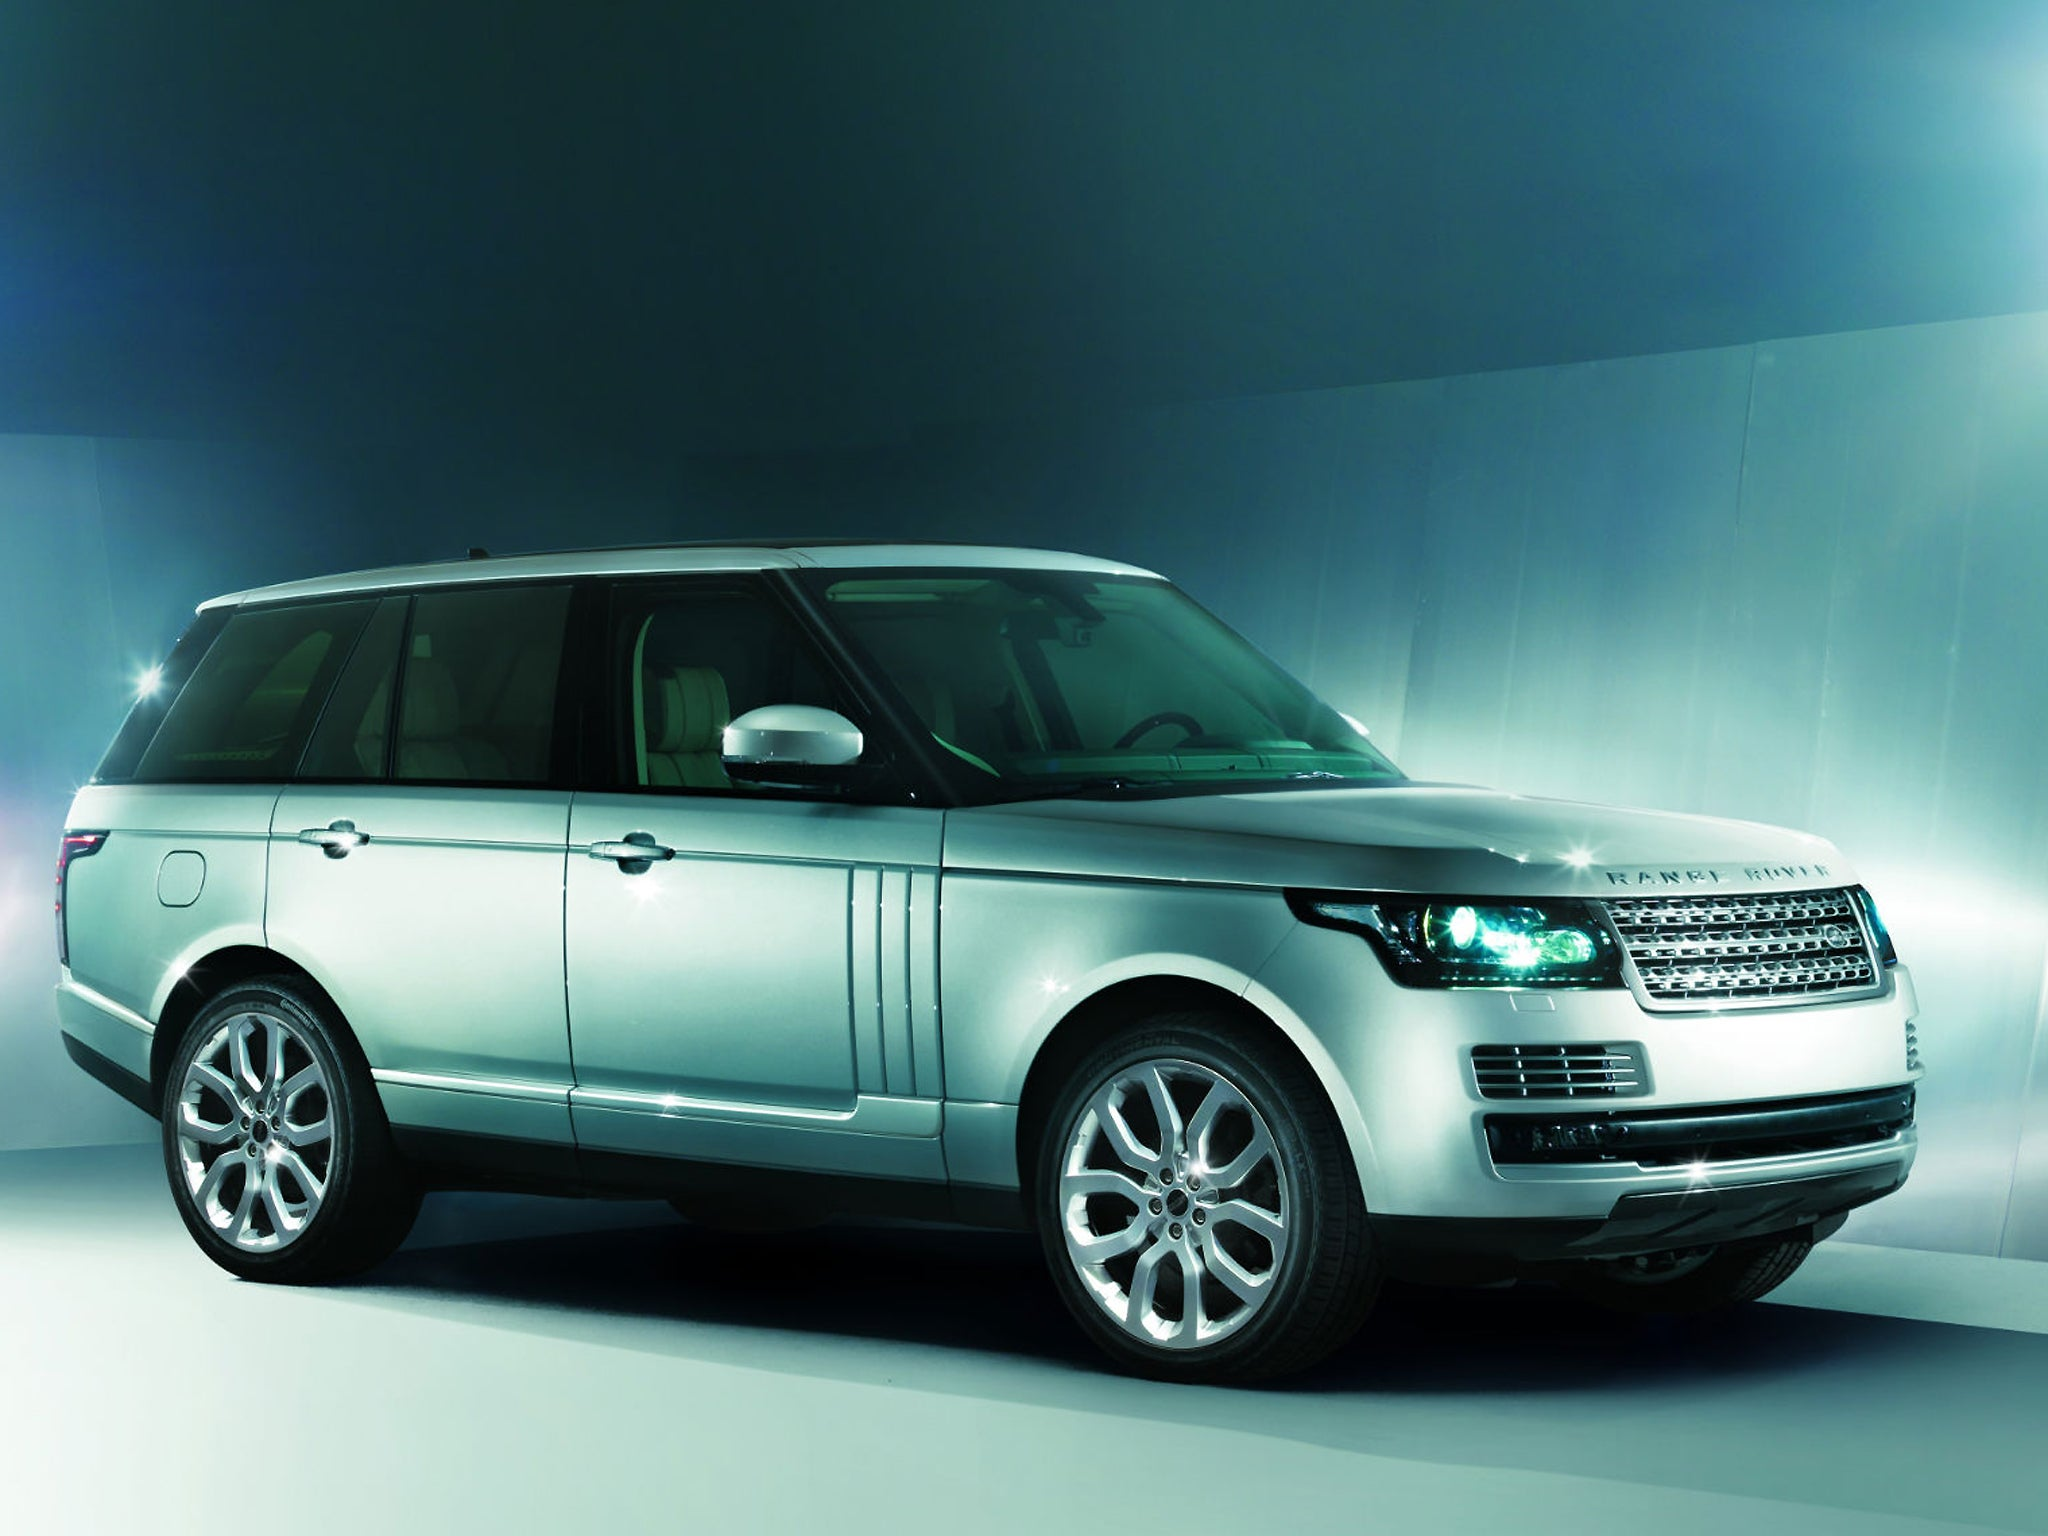 2013 Range Rover - First Ride   The Independentindependent_brand_ident_LOGOUntitled